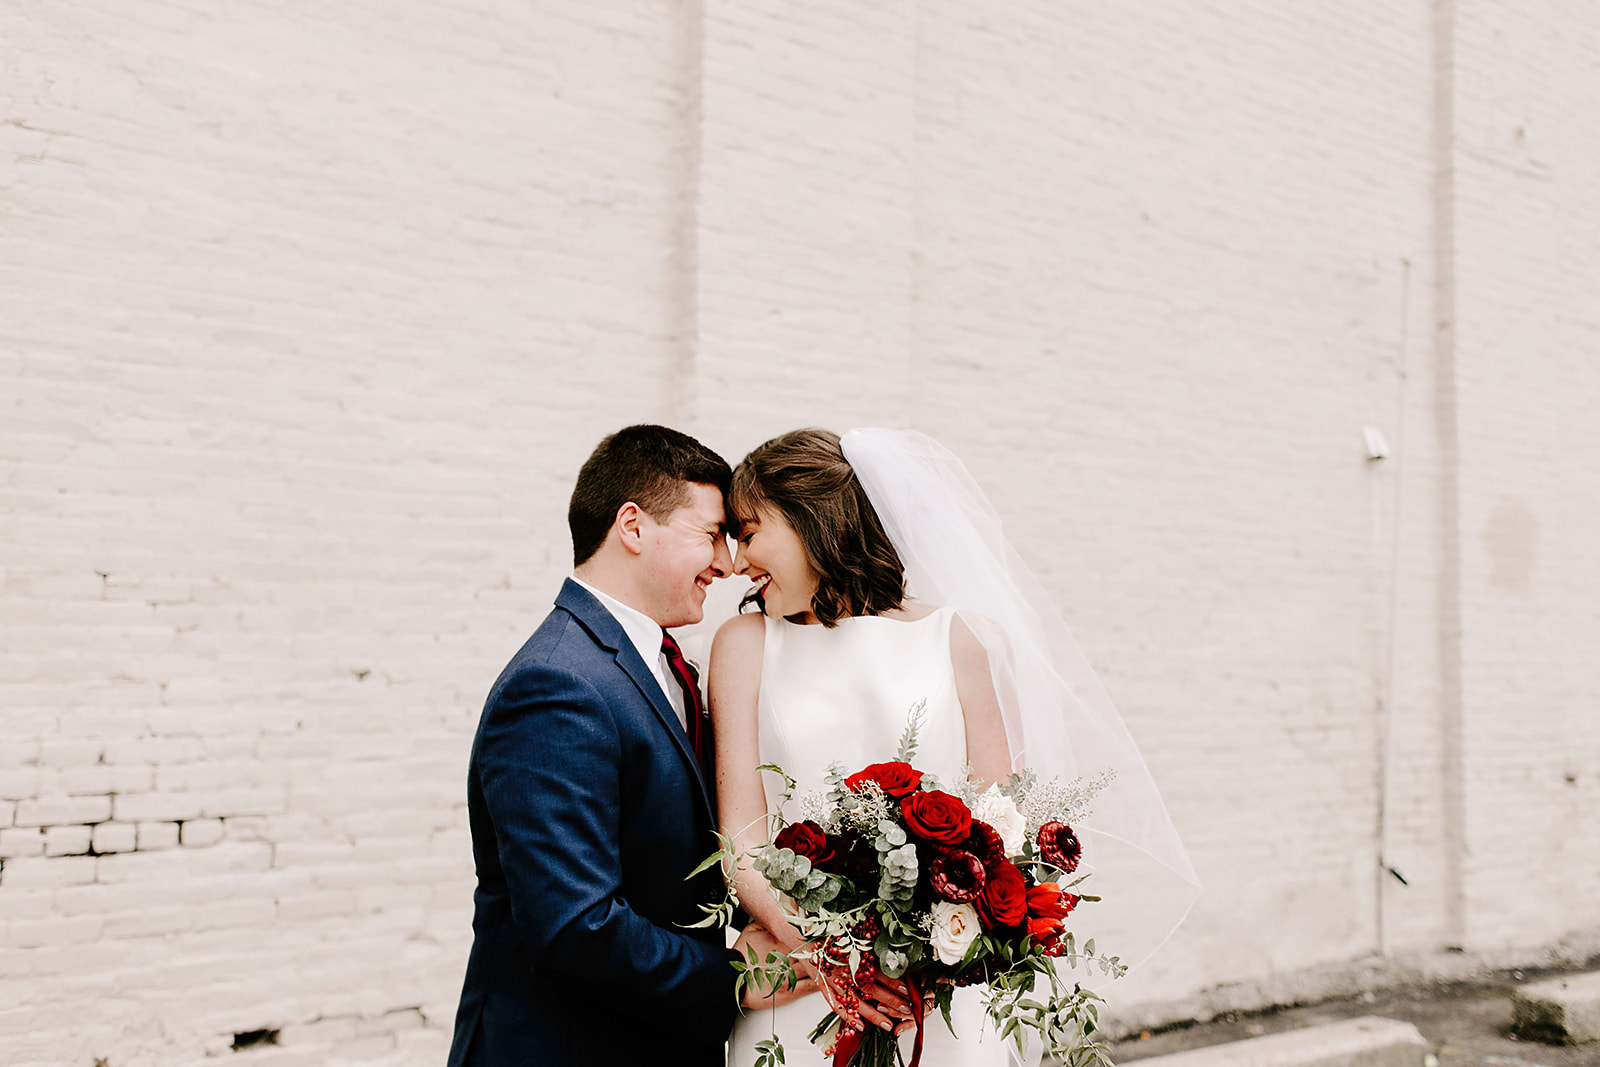 Emily and Davis_ Wedding at Vision Loft Indy in Indianapolis Indiana by Emily Elyse Wehner Photogrpahy LLC-503.jpg